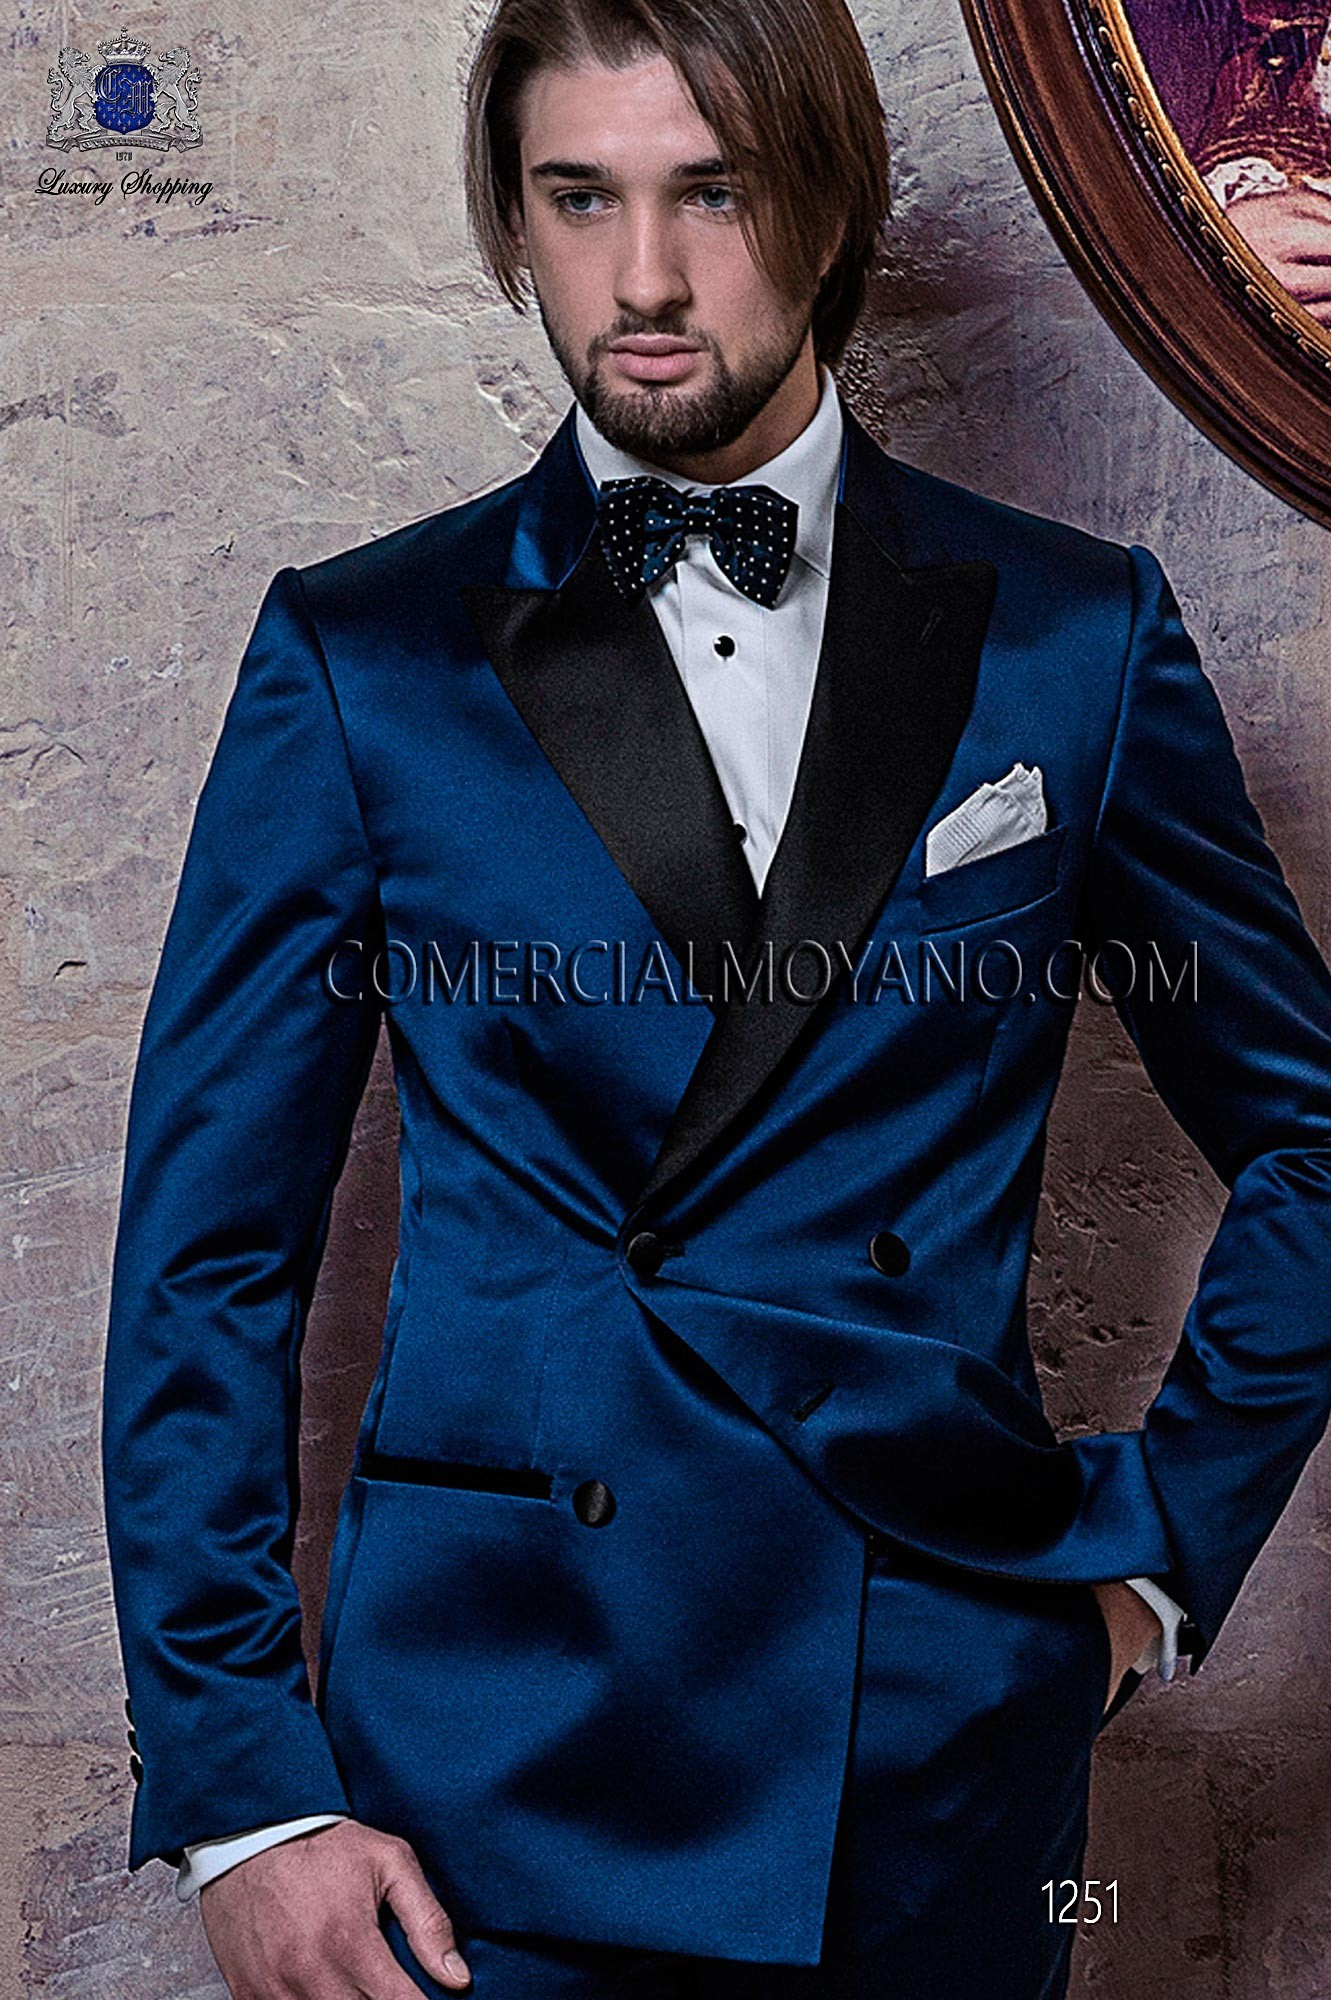 Black Tie Blue men wedding suit, model: 1251 Ottavio Nuccio Gala ...